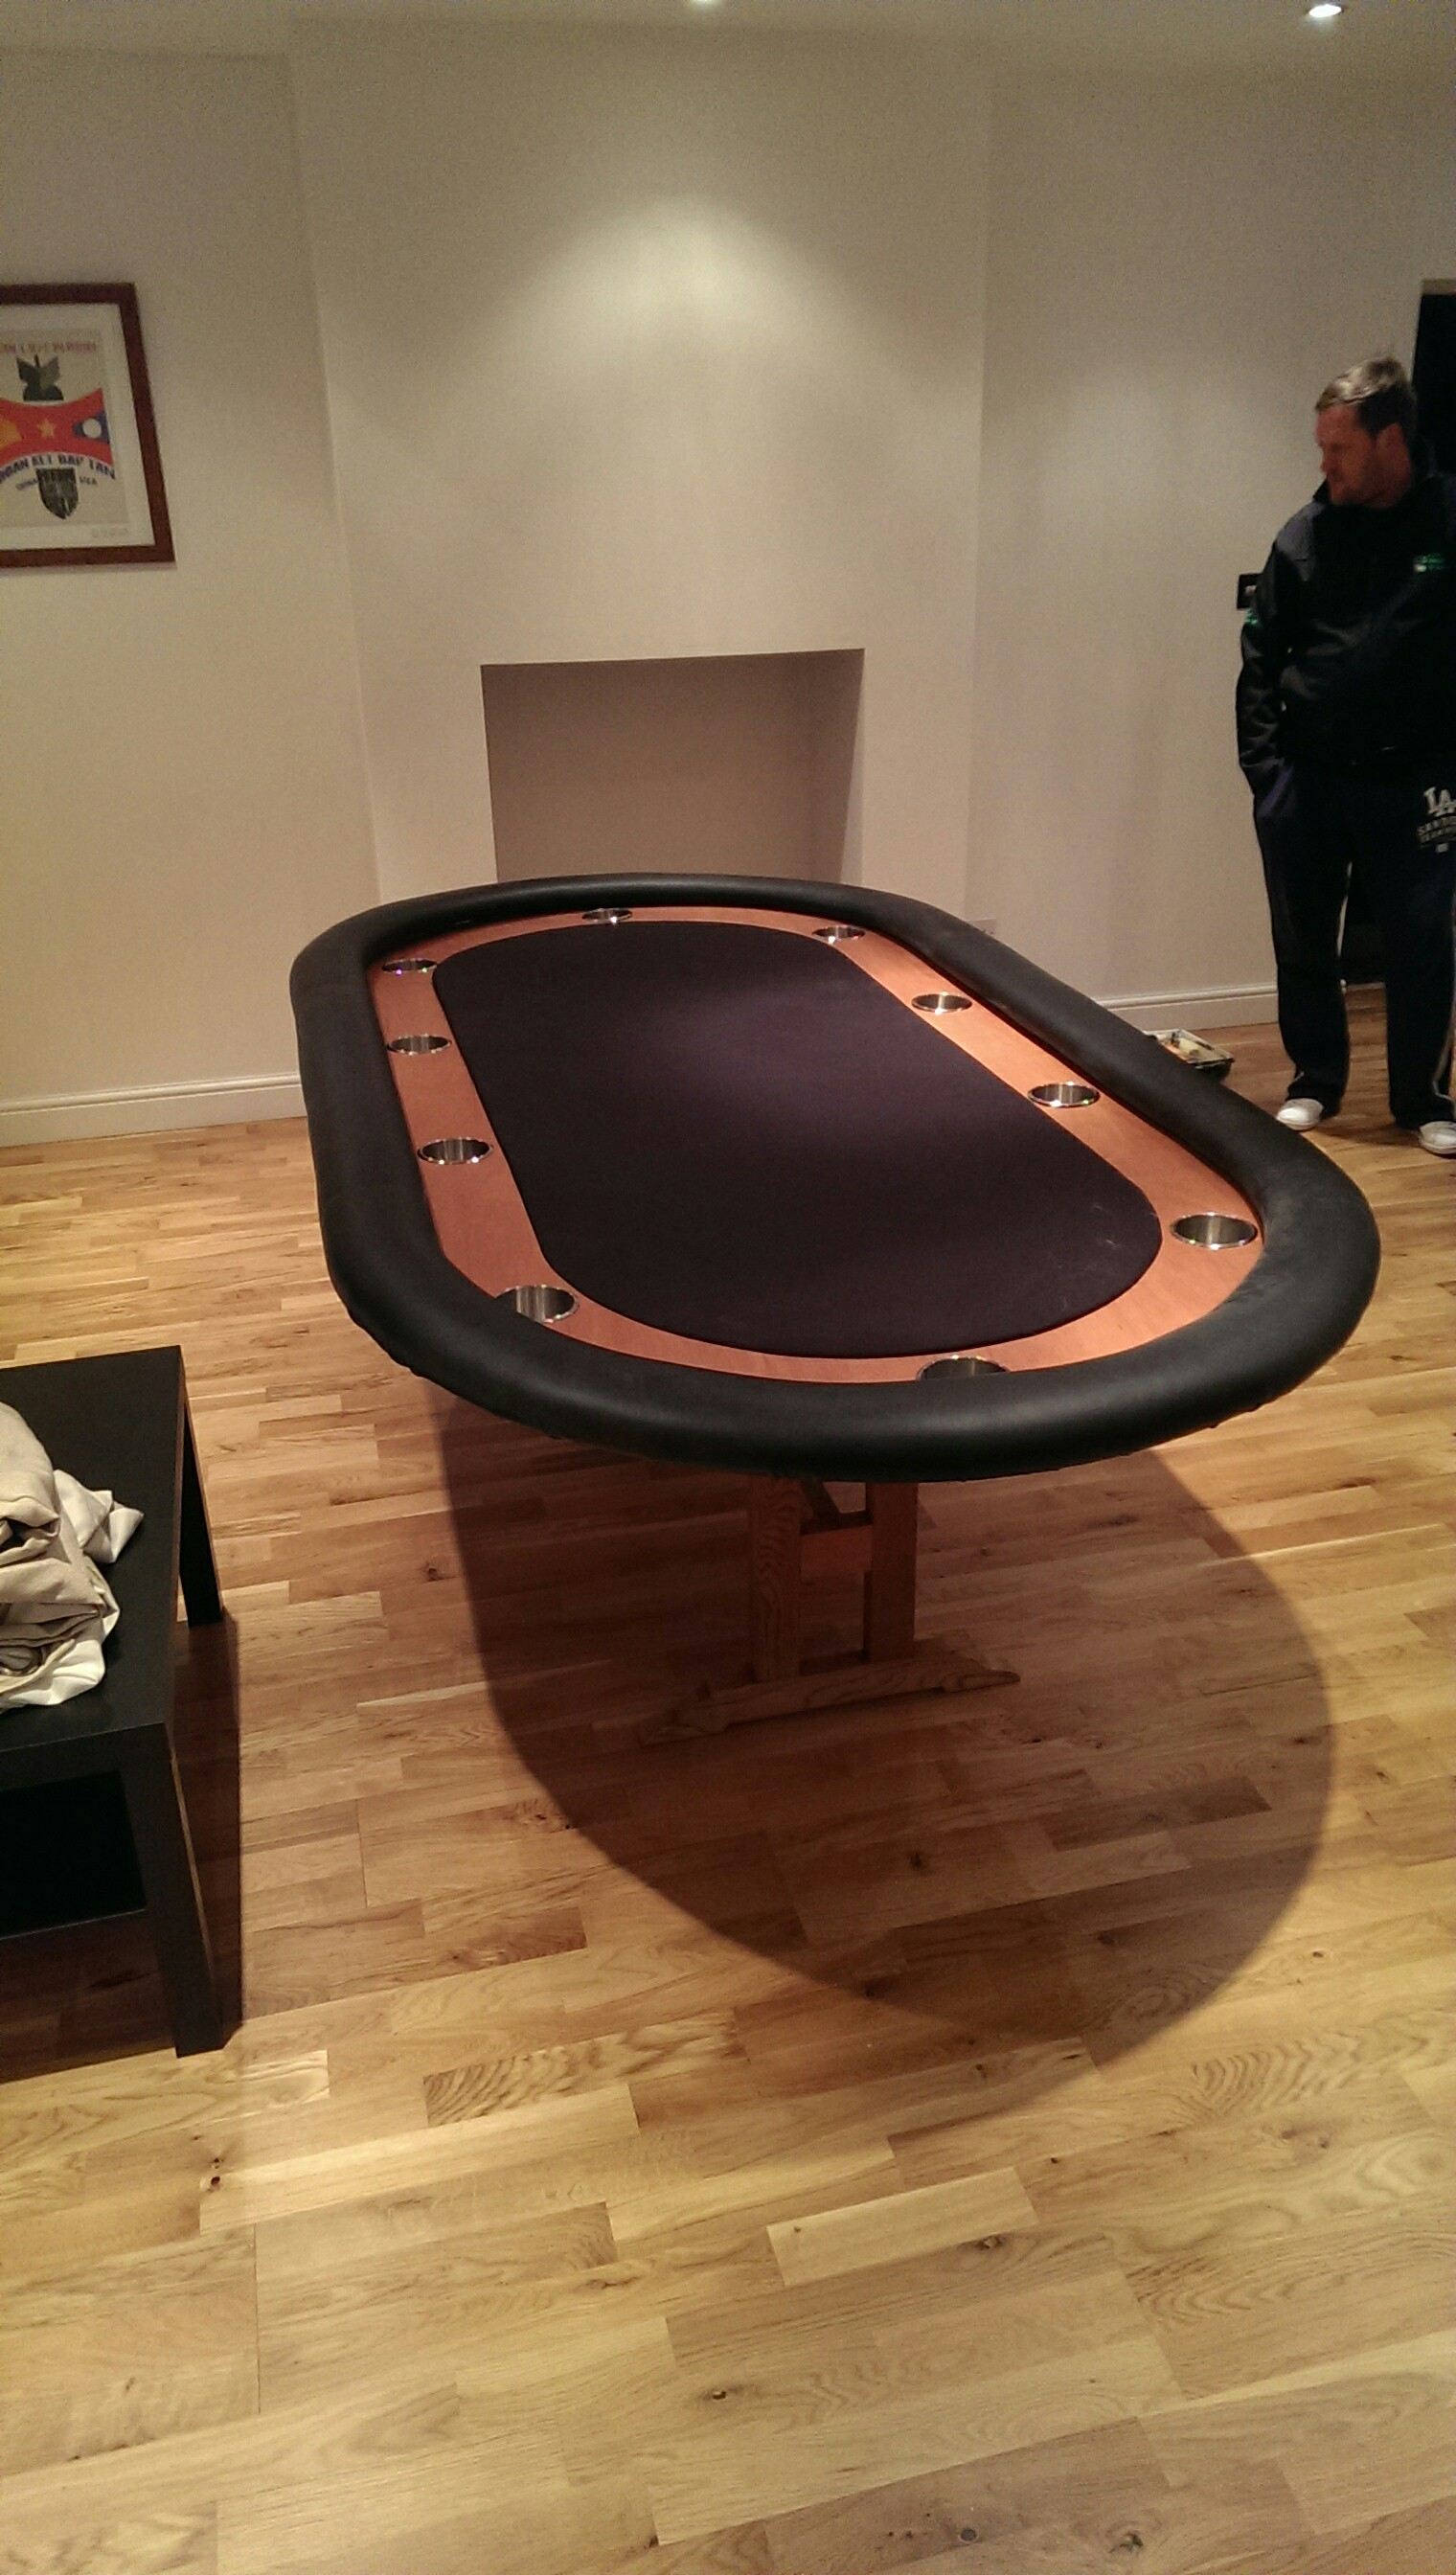 poker table top for sale in uk 116 used poker table tops